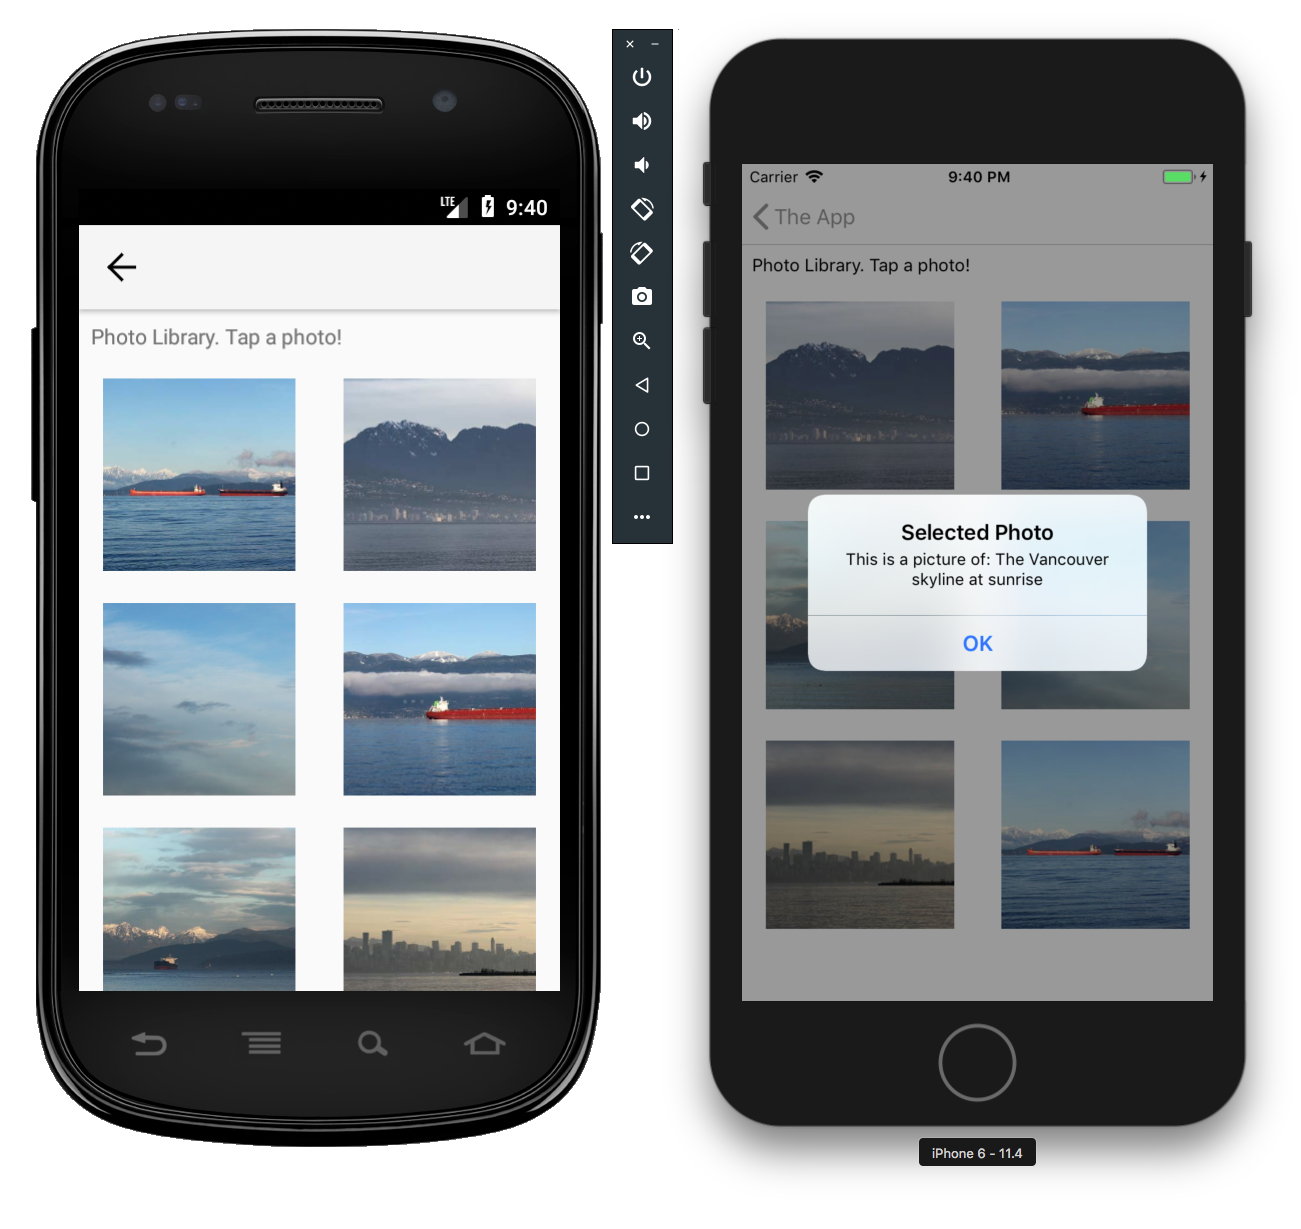 The photo view feature